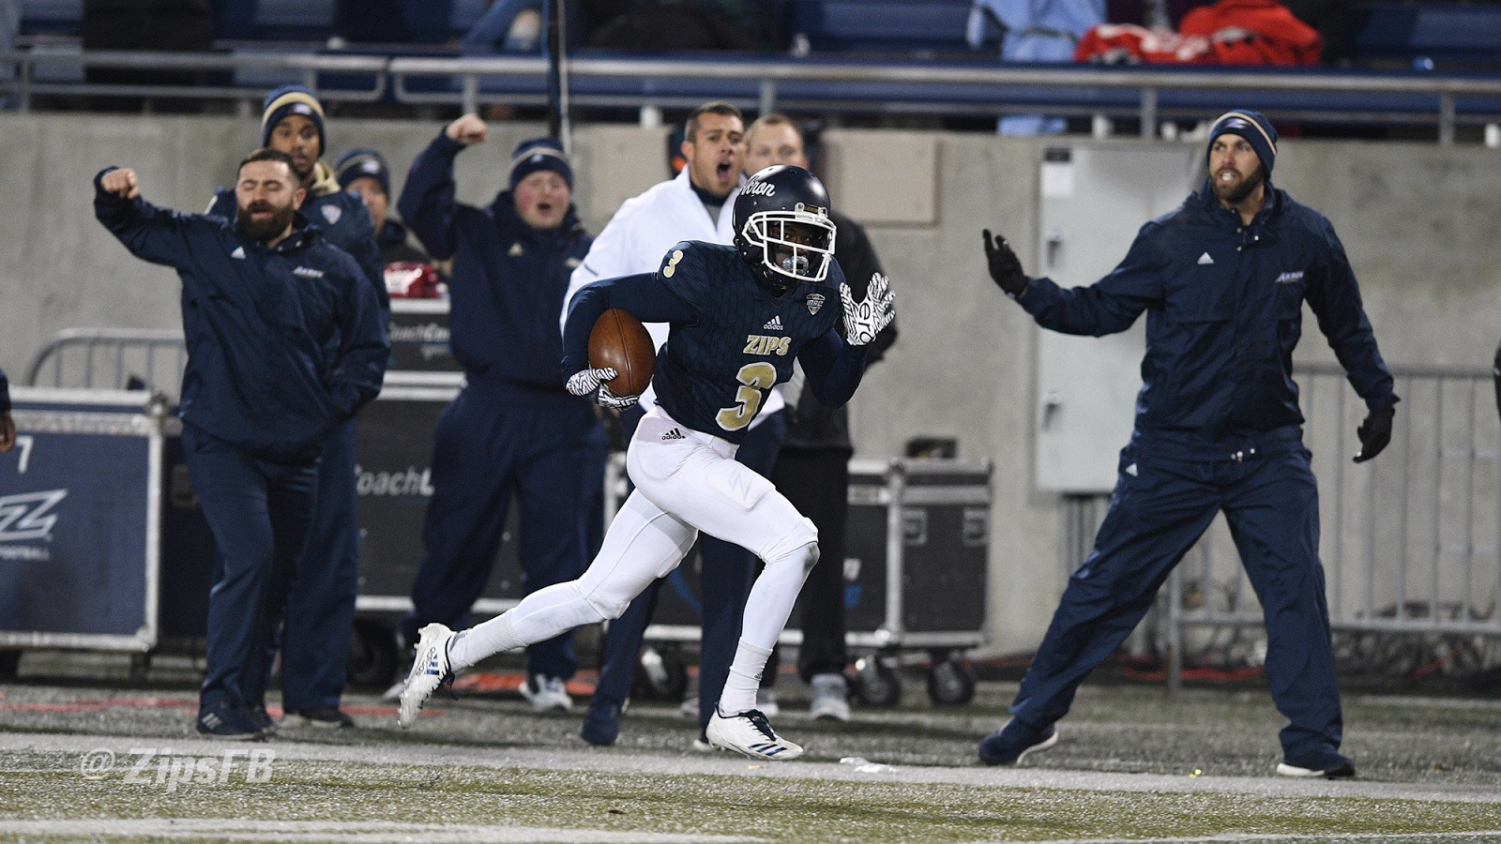 Kwadarrius Smith on the way to the endzone for a 71-yard receiving touchdown. (Photo courtesy of Zips Football)